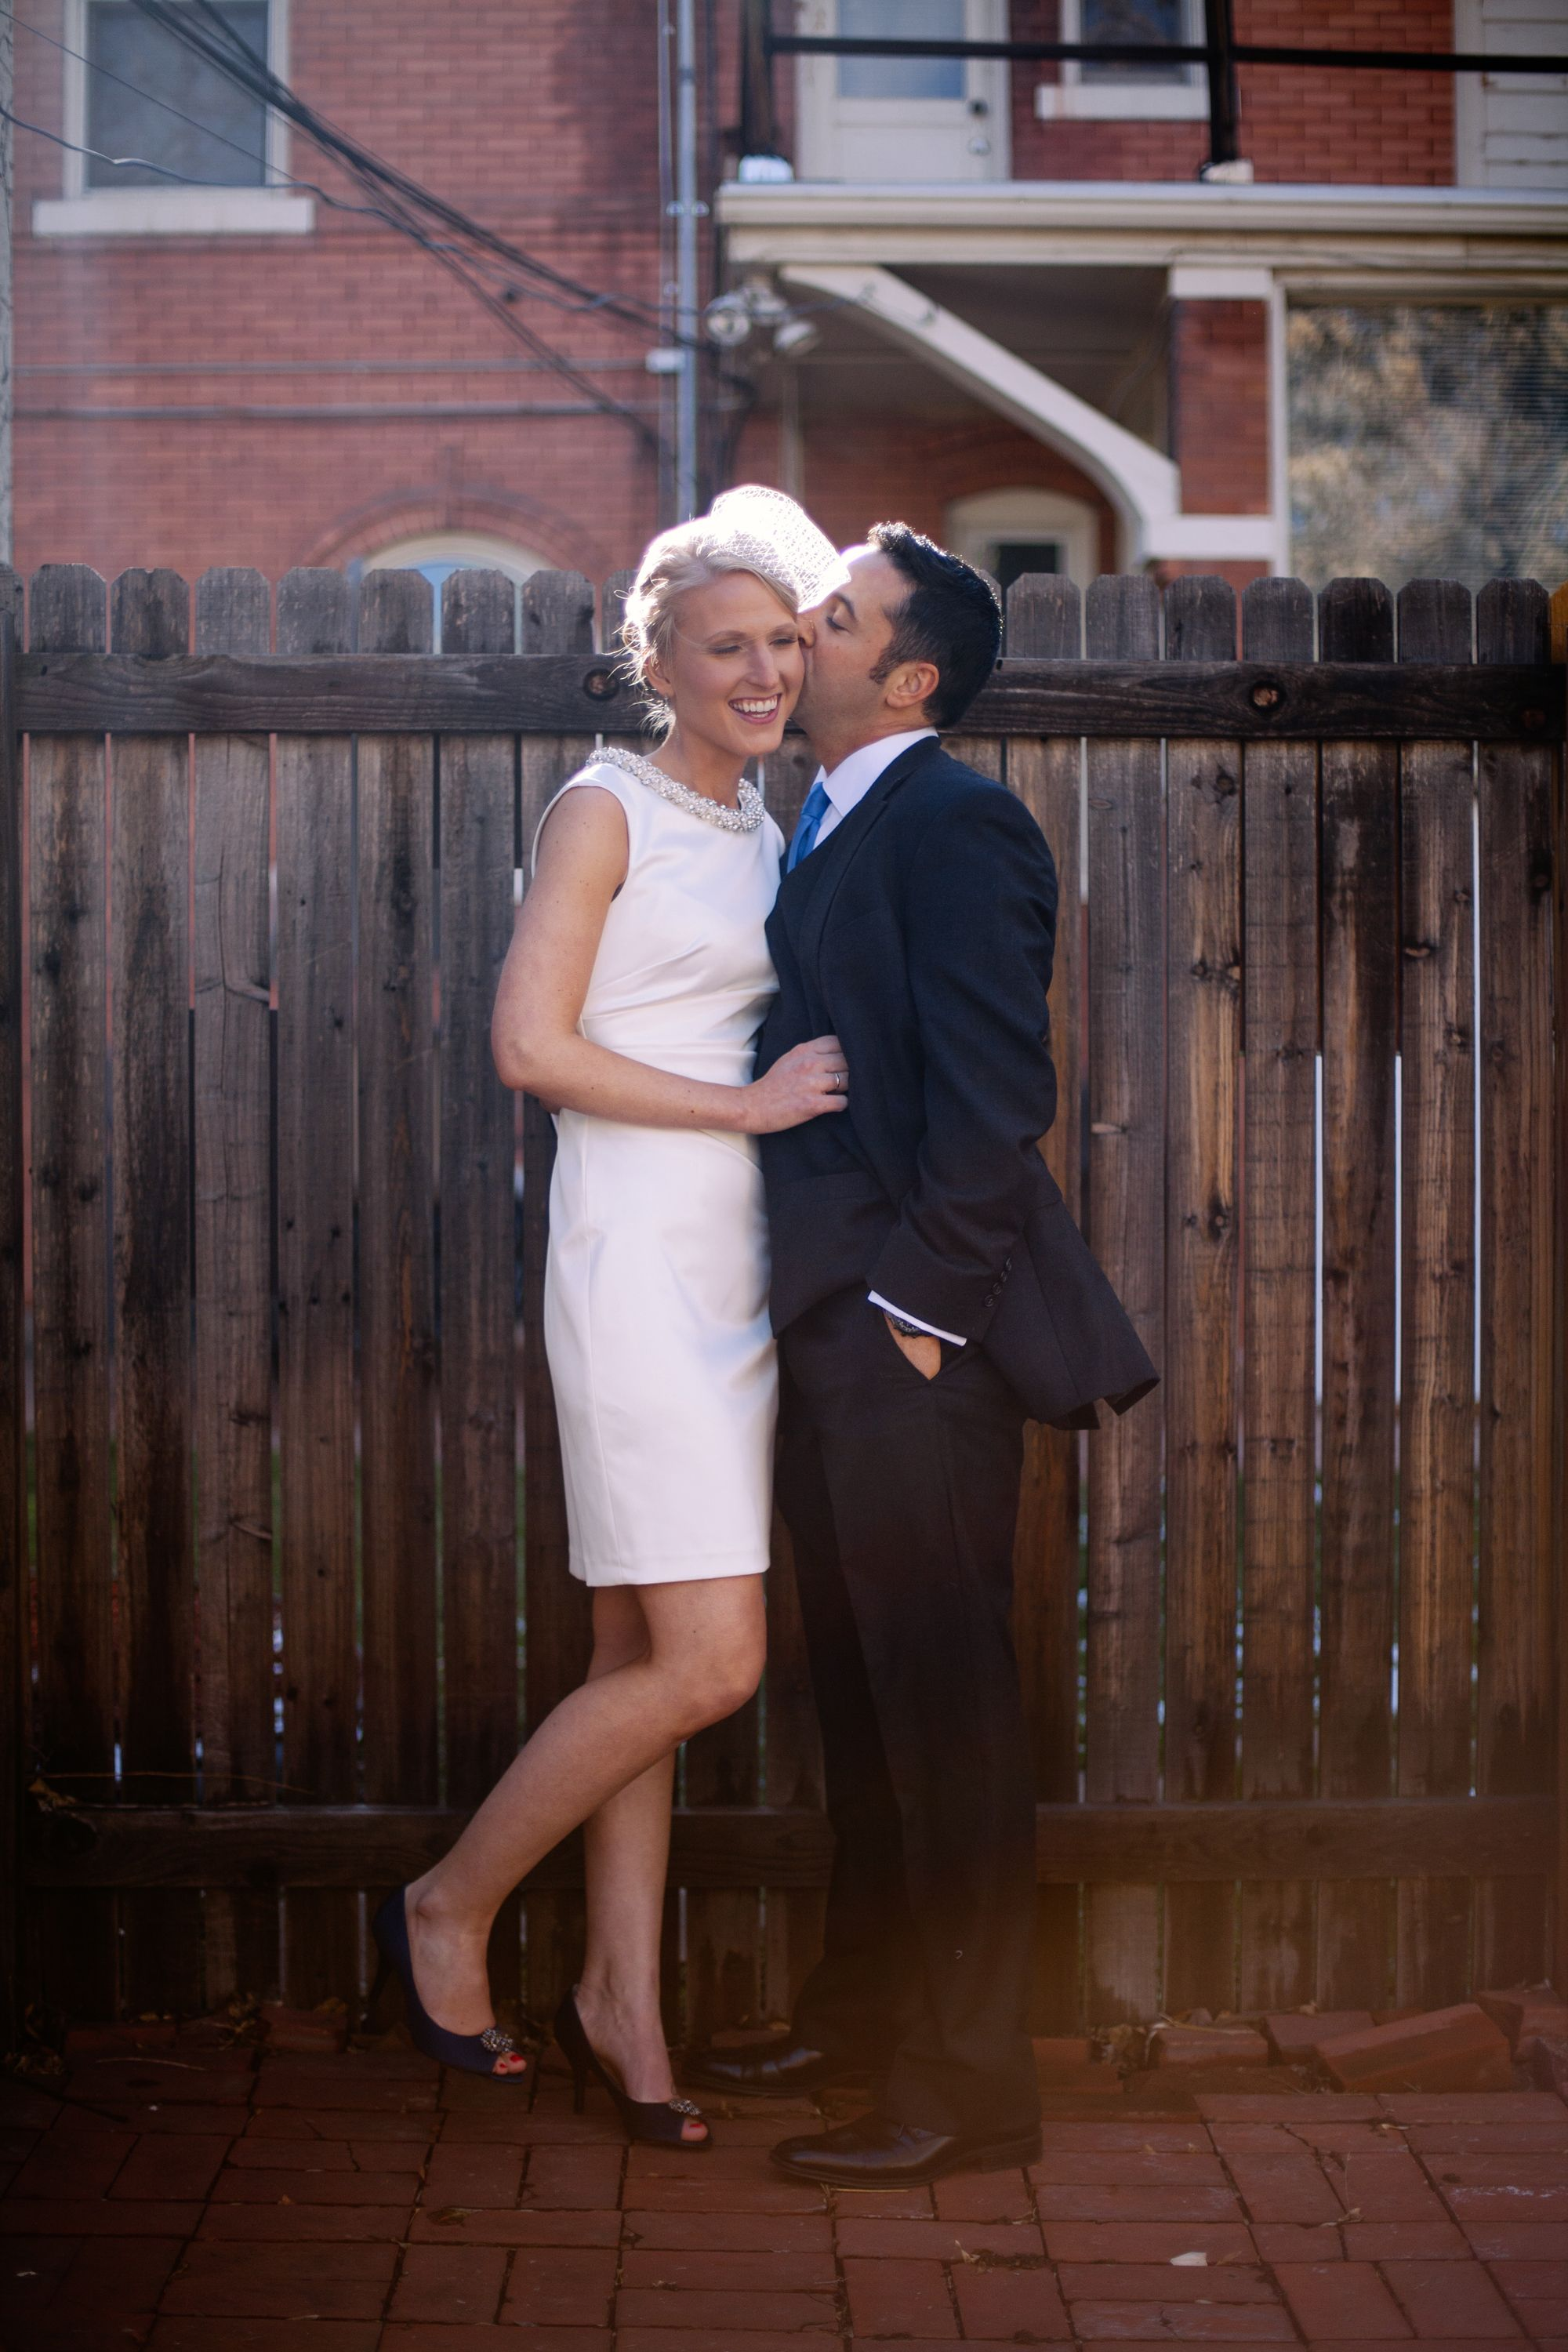 elopement love short 1950s style jackie o wedding dress and a